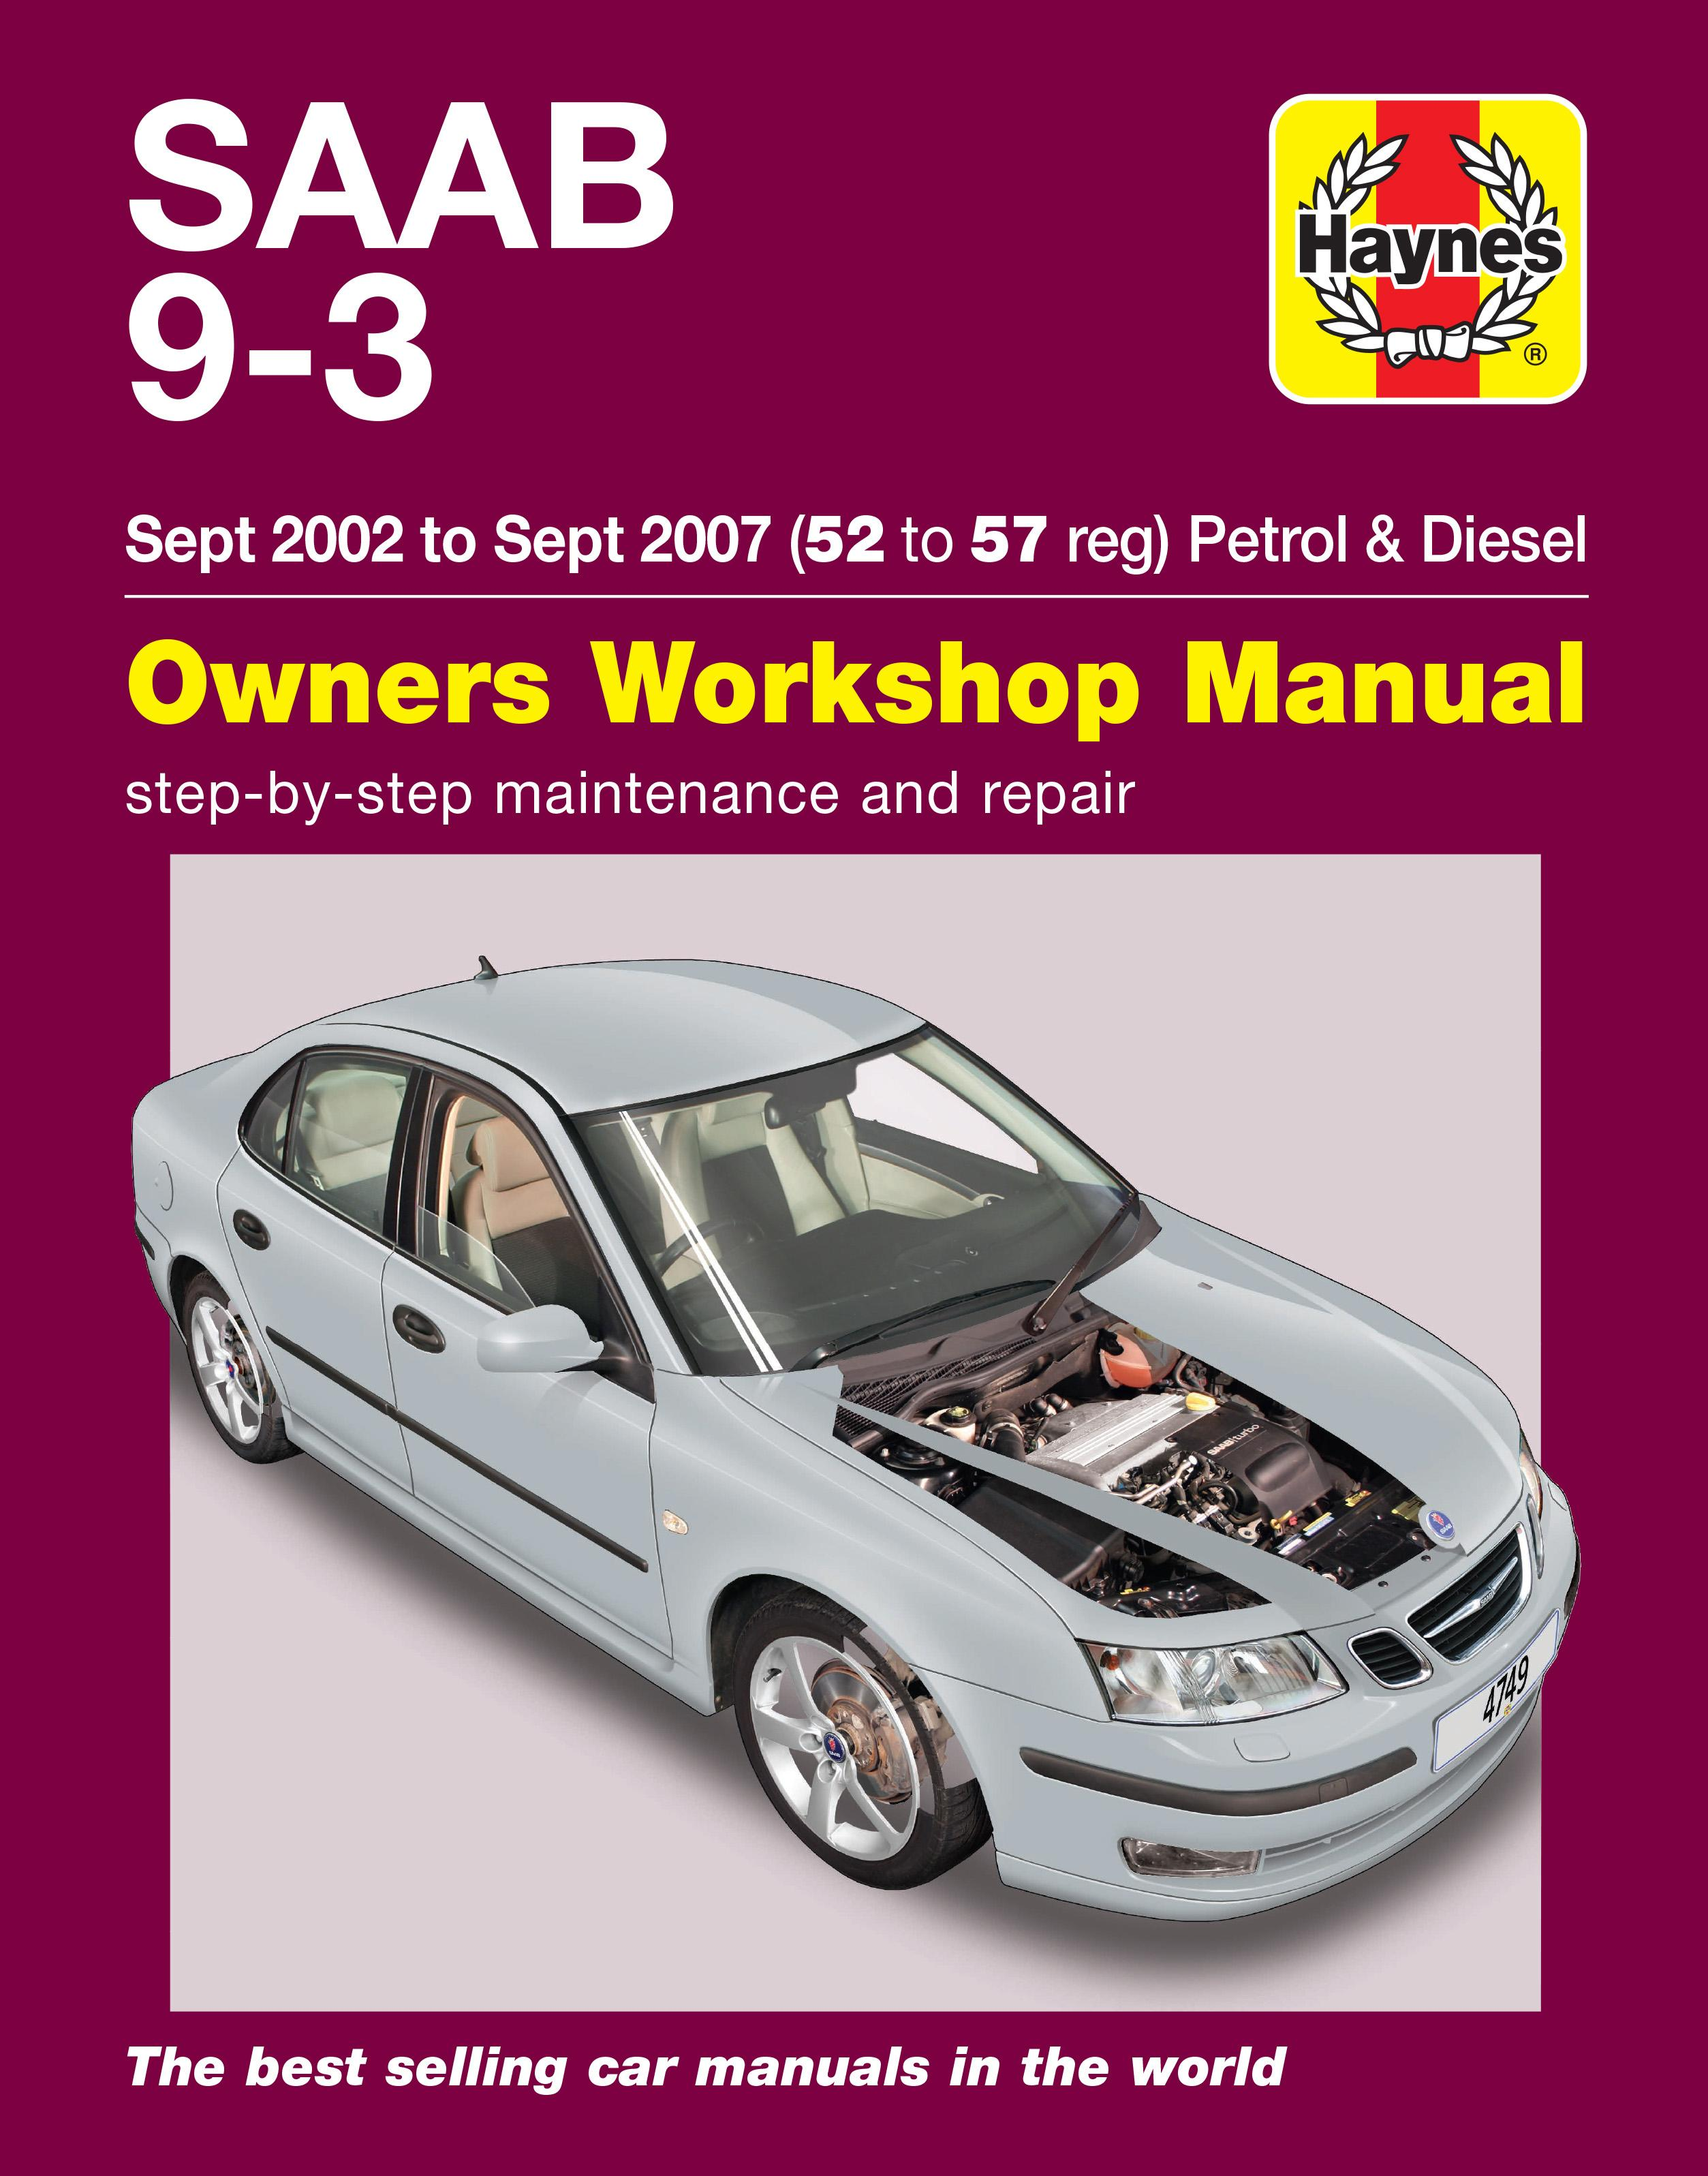 haynes saab 9 3 sept 02 sept 07 rh halfords com saab 9-3 owner's manual pdf 2006 saab 9-3 owner's manual